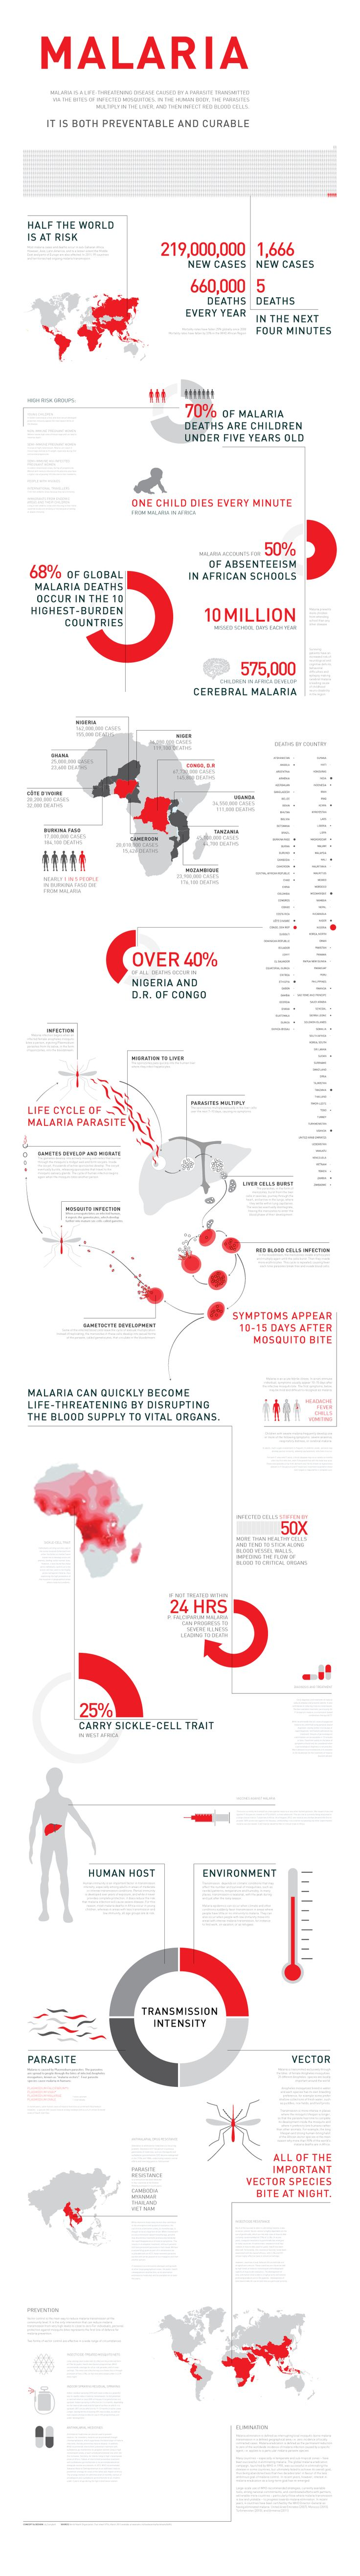 Malaria is a life-threatening disease caused by a parasite transmitted via the bites of infected mosquitoes. In the human body, the parasites multiply